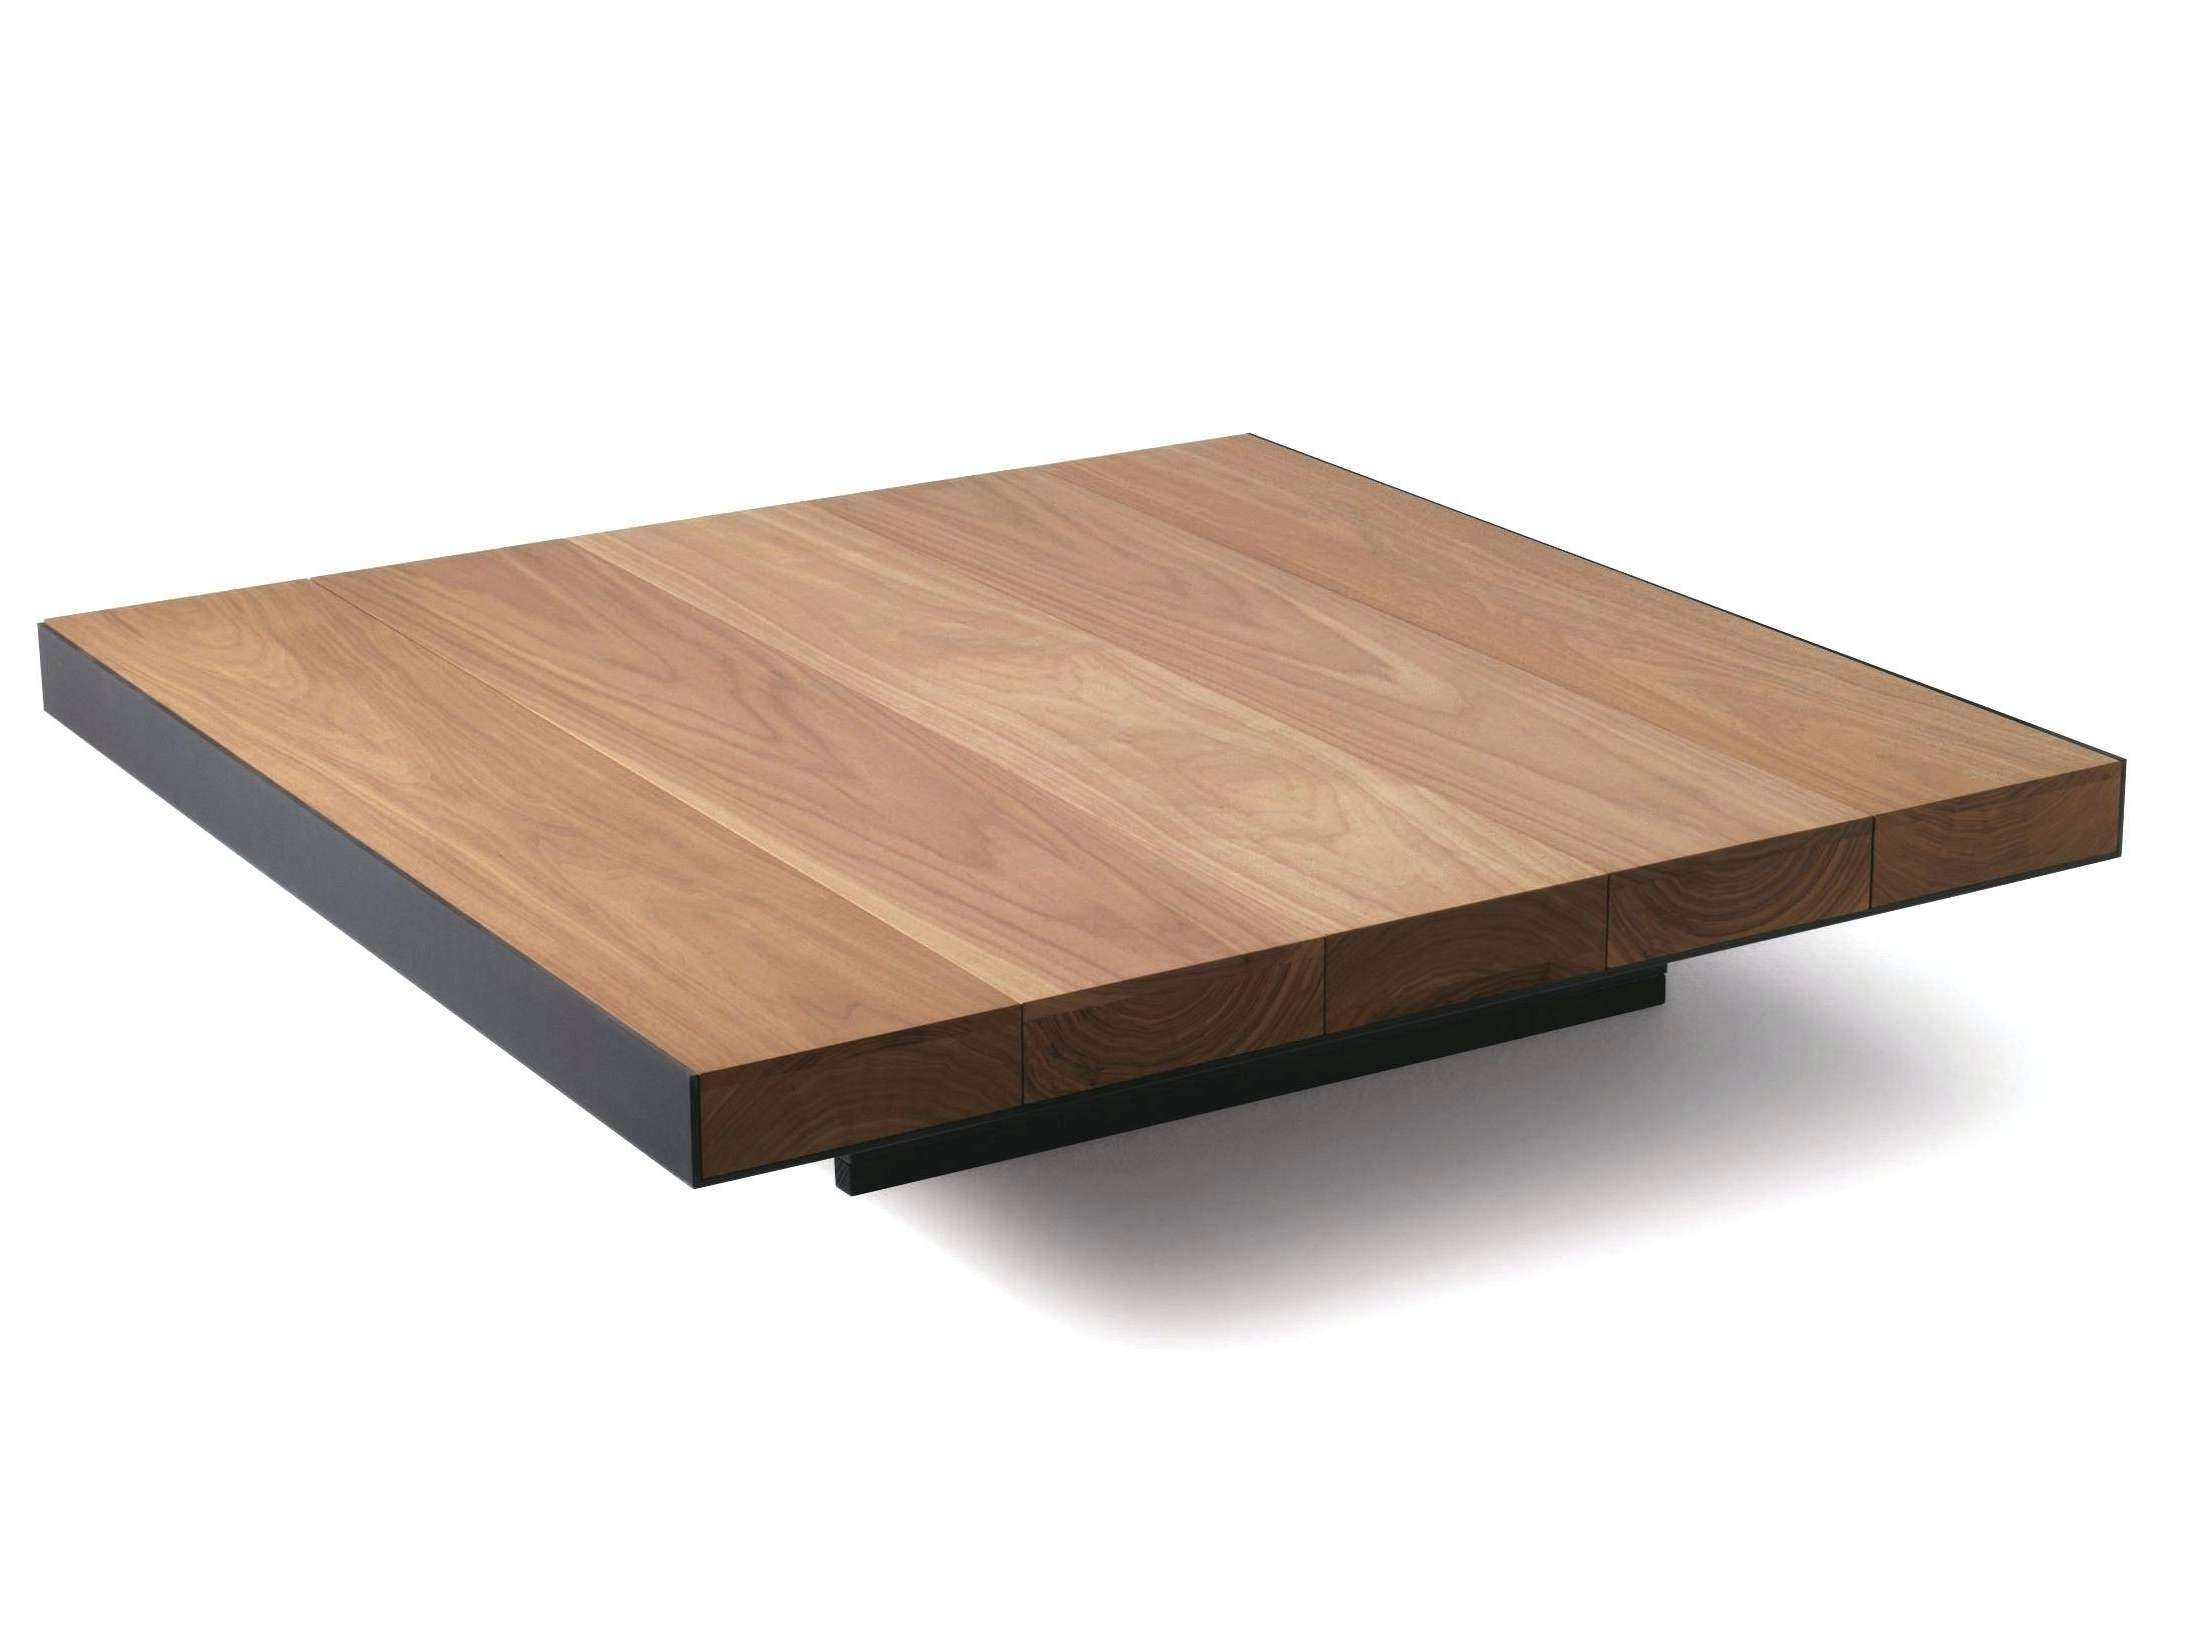 Awesome Low Wooden Coffee Table – Mediasupload Inside Latest Large Low Wooden Coffee Tables (View 2 of 20)